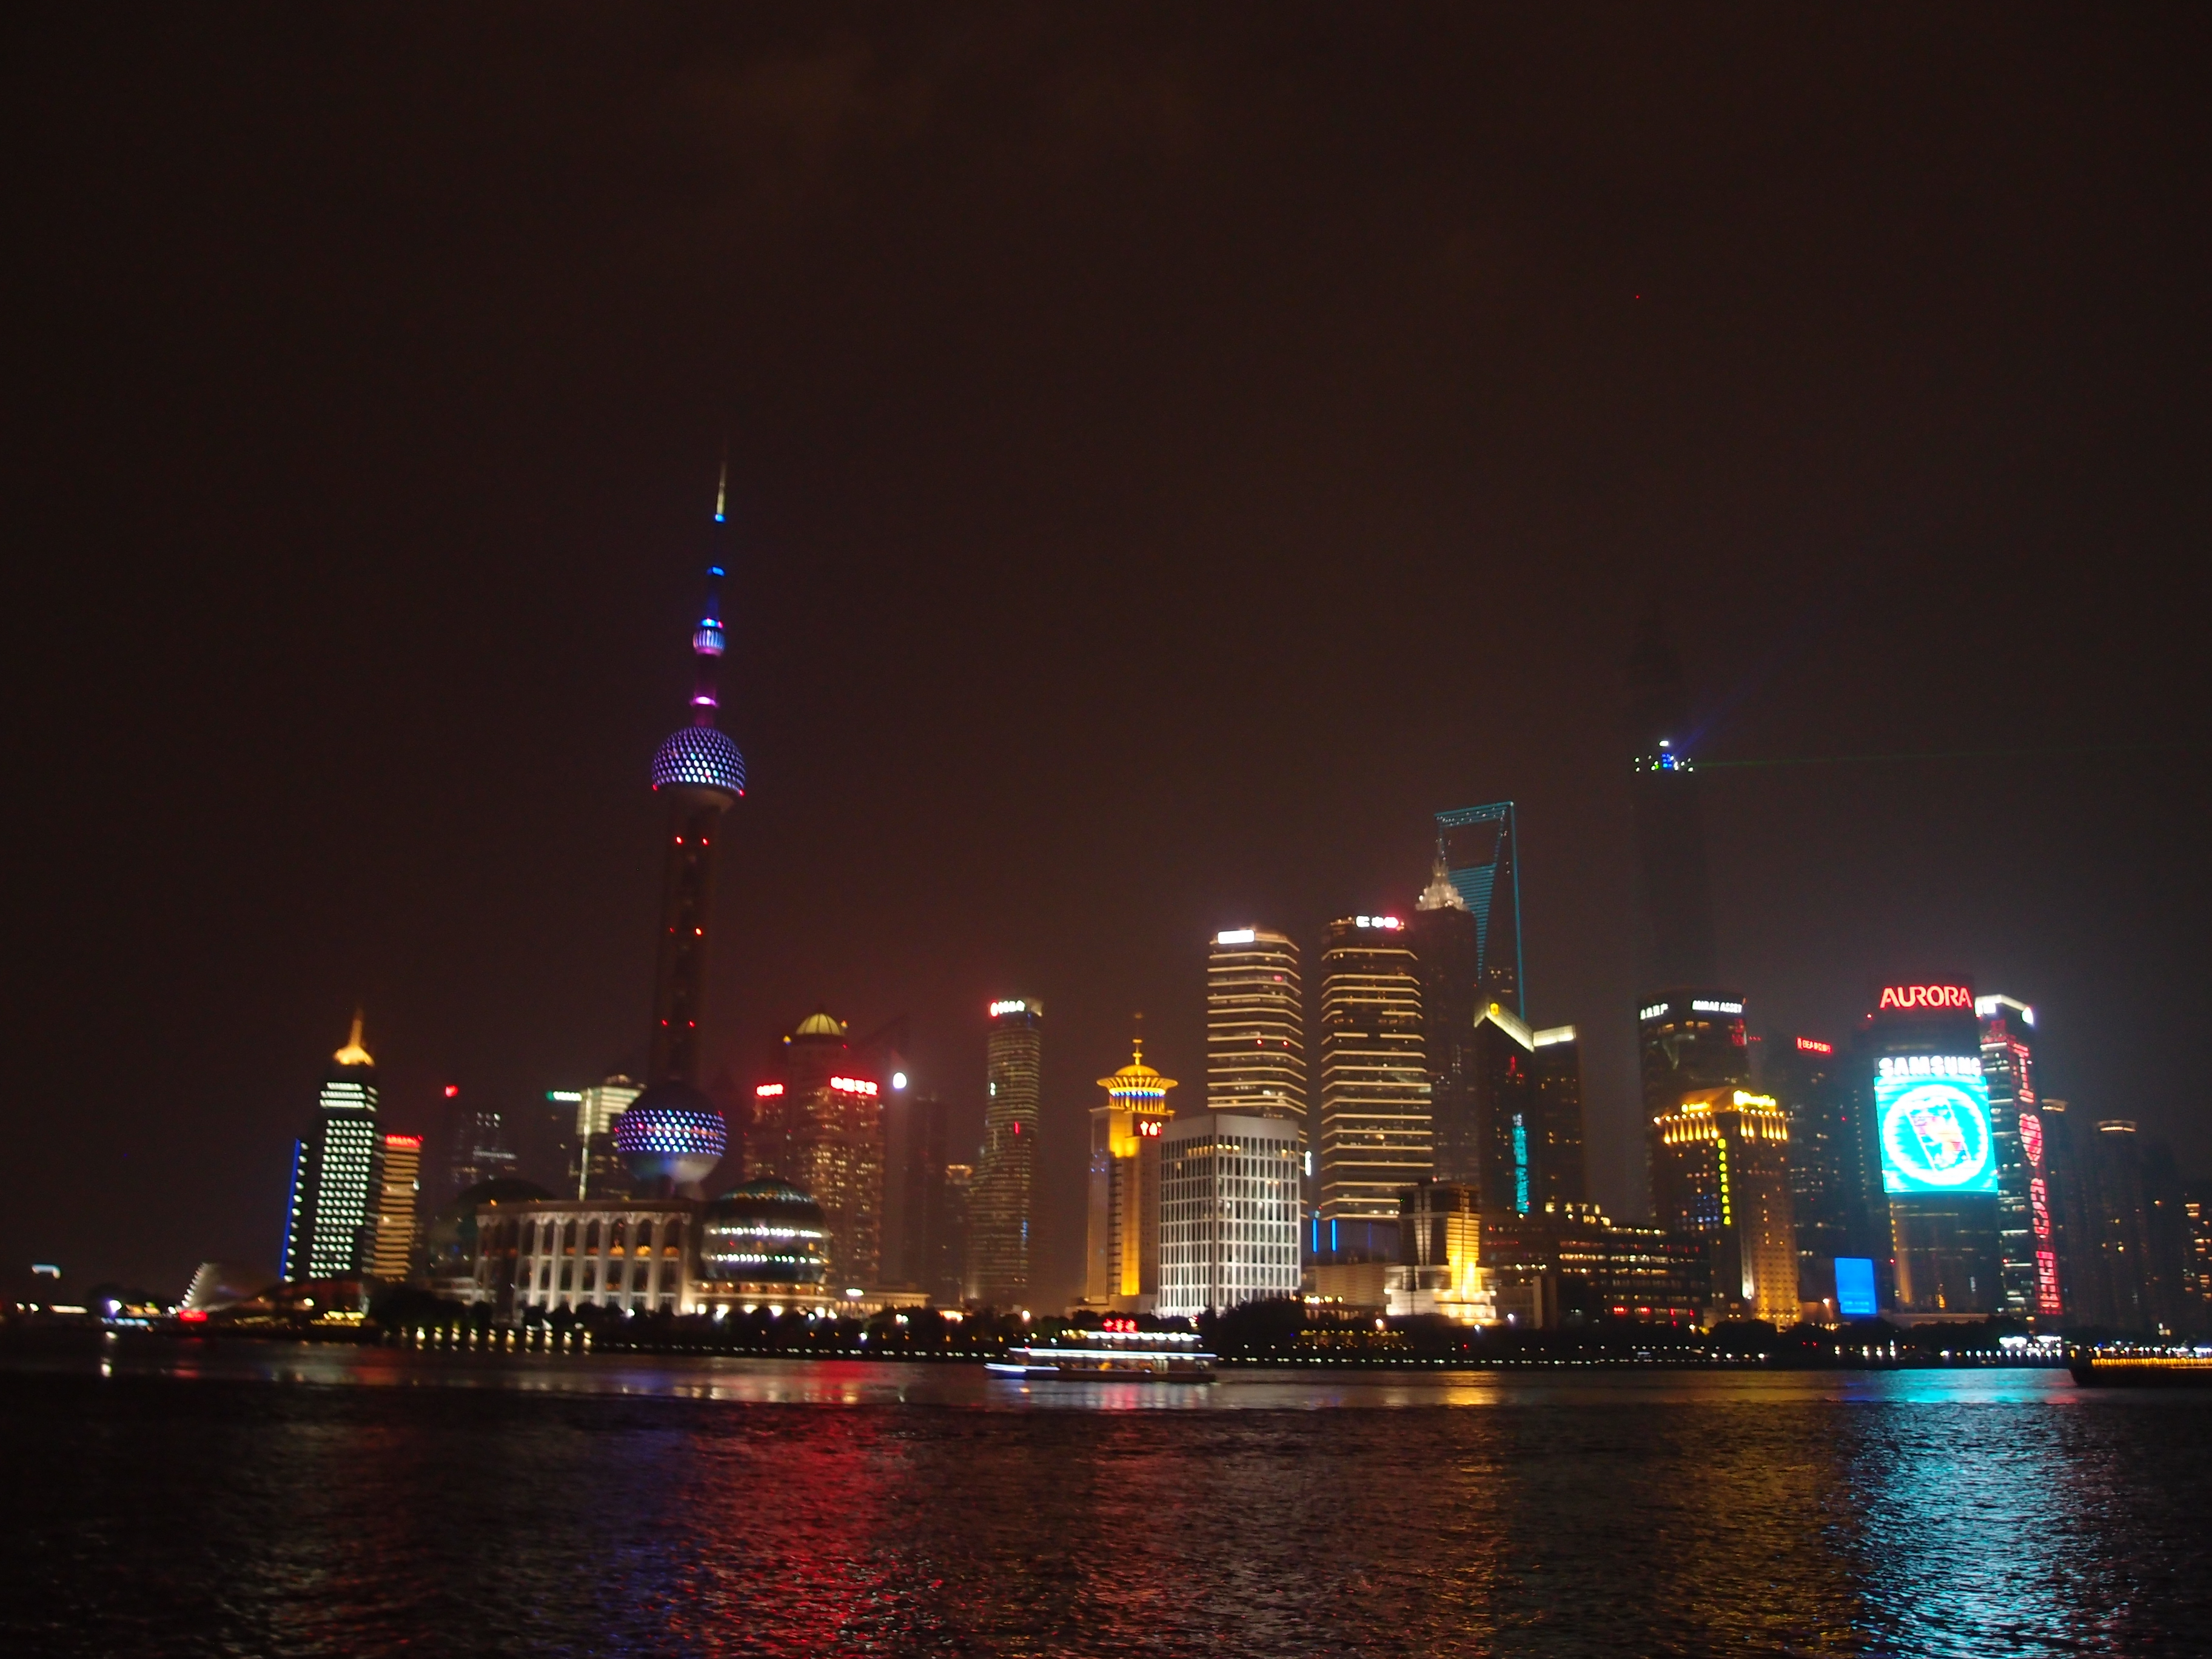 Taken: The Bund at June 3, 2014 at 20:10